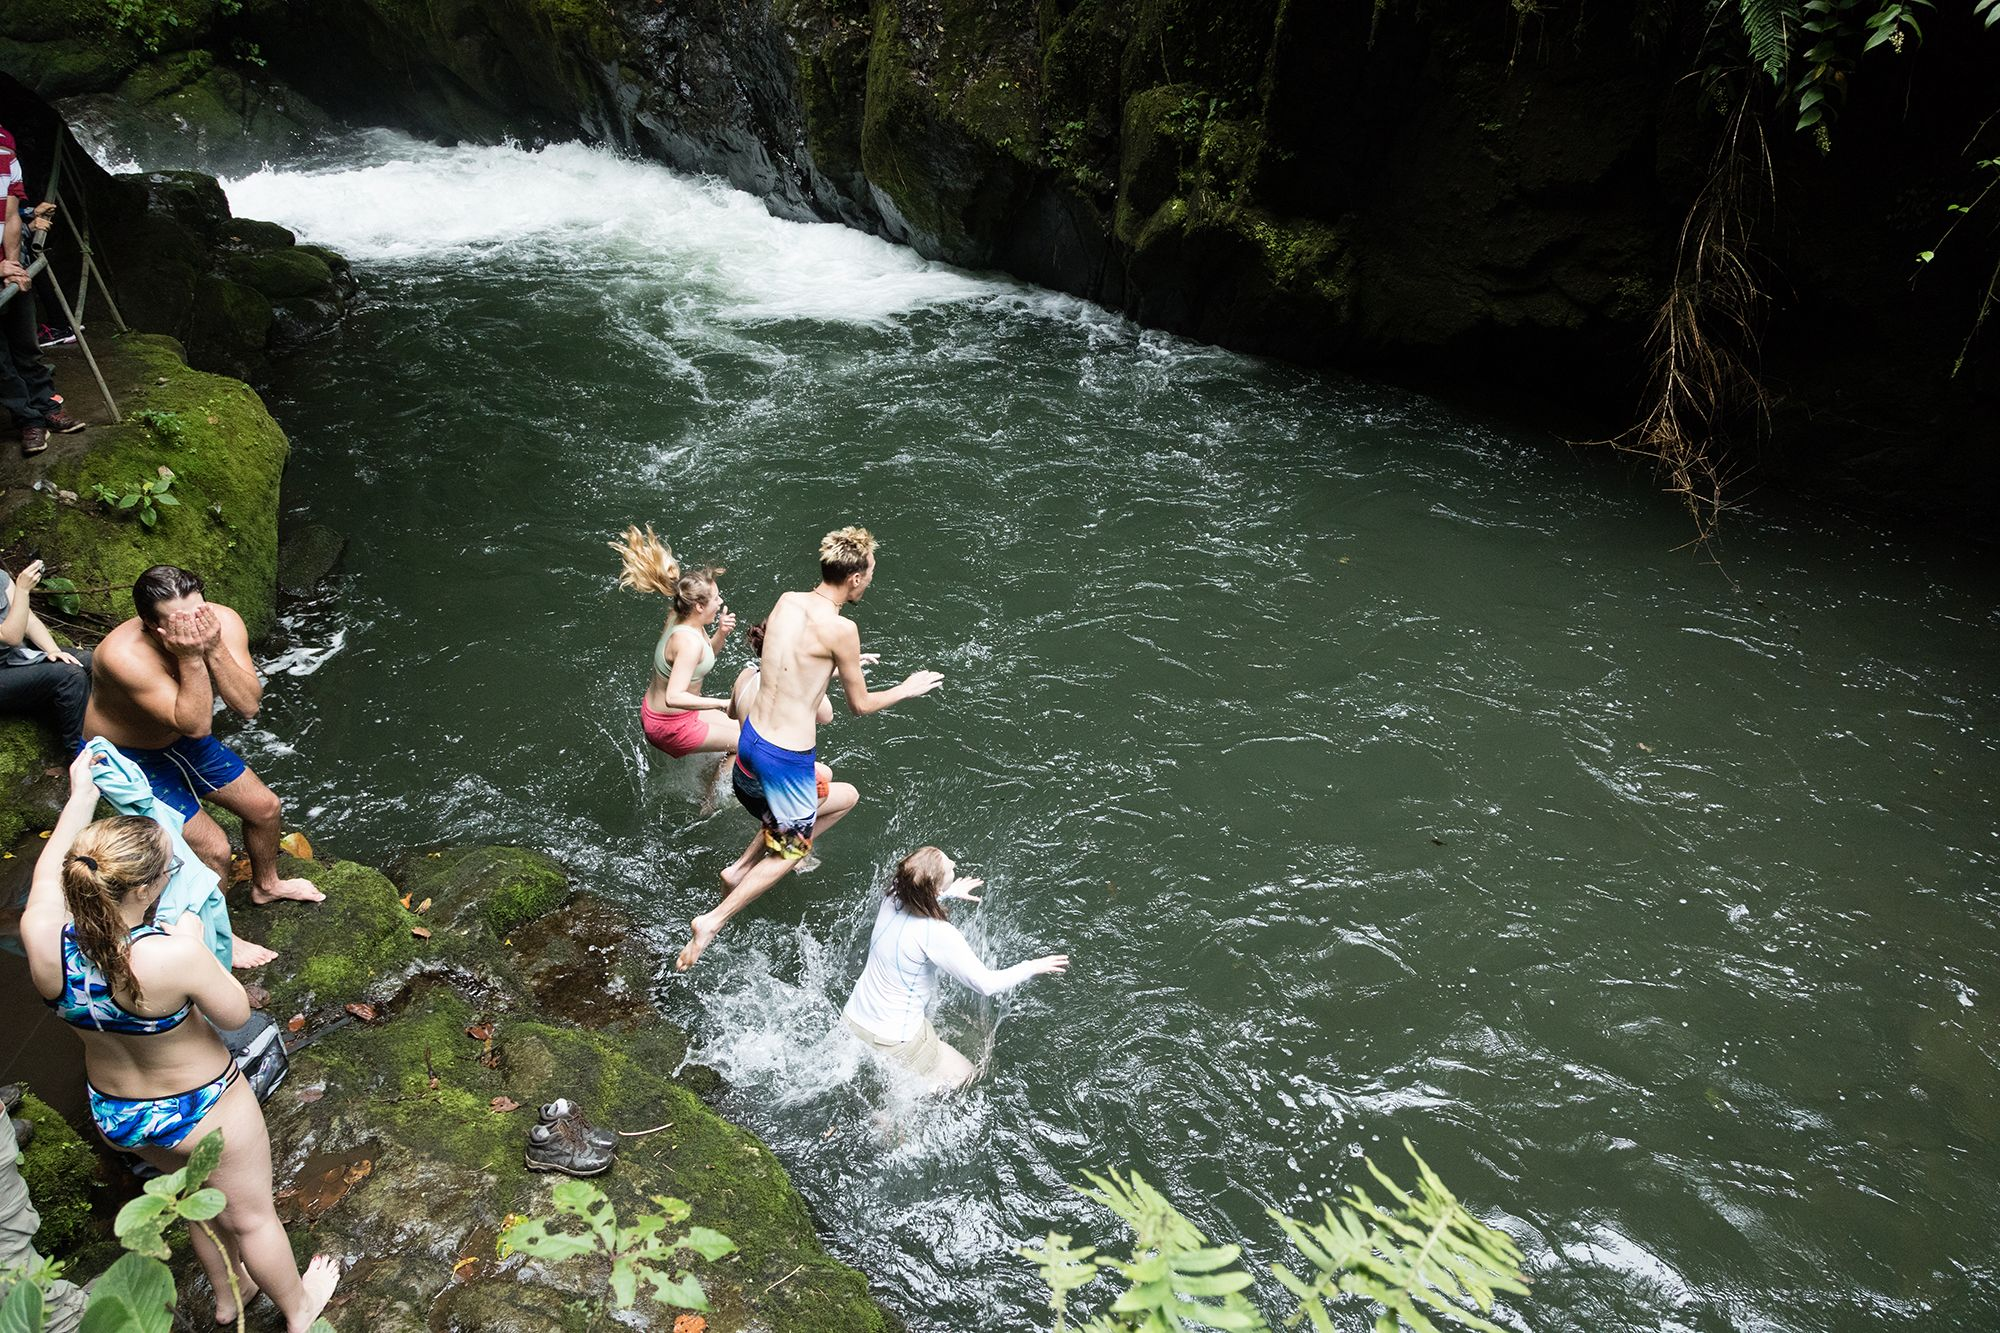 Students jumping from a cliff into the water in Costa Rica.